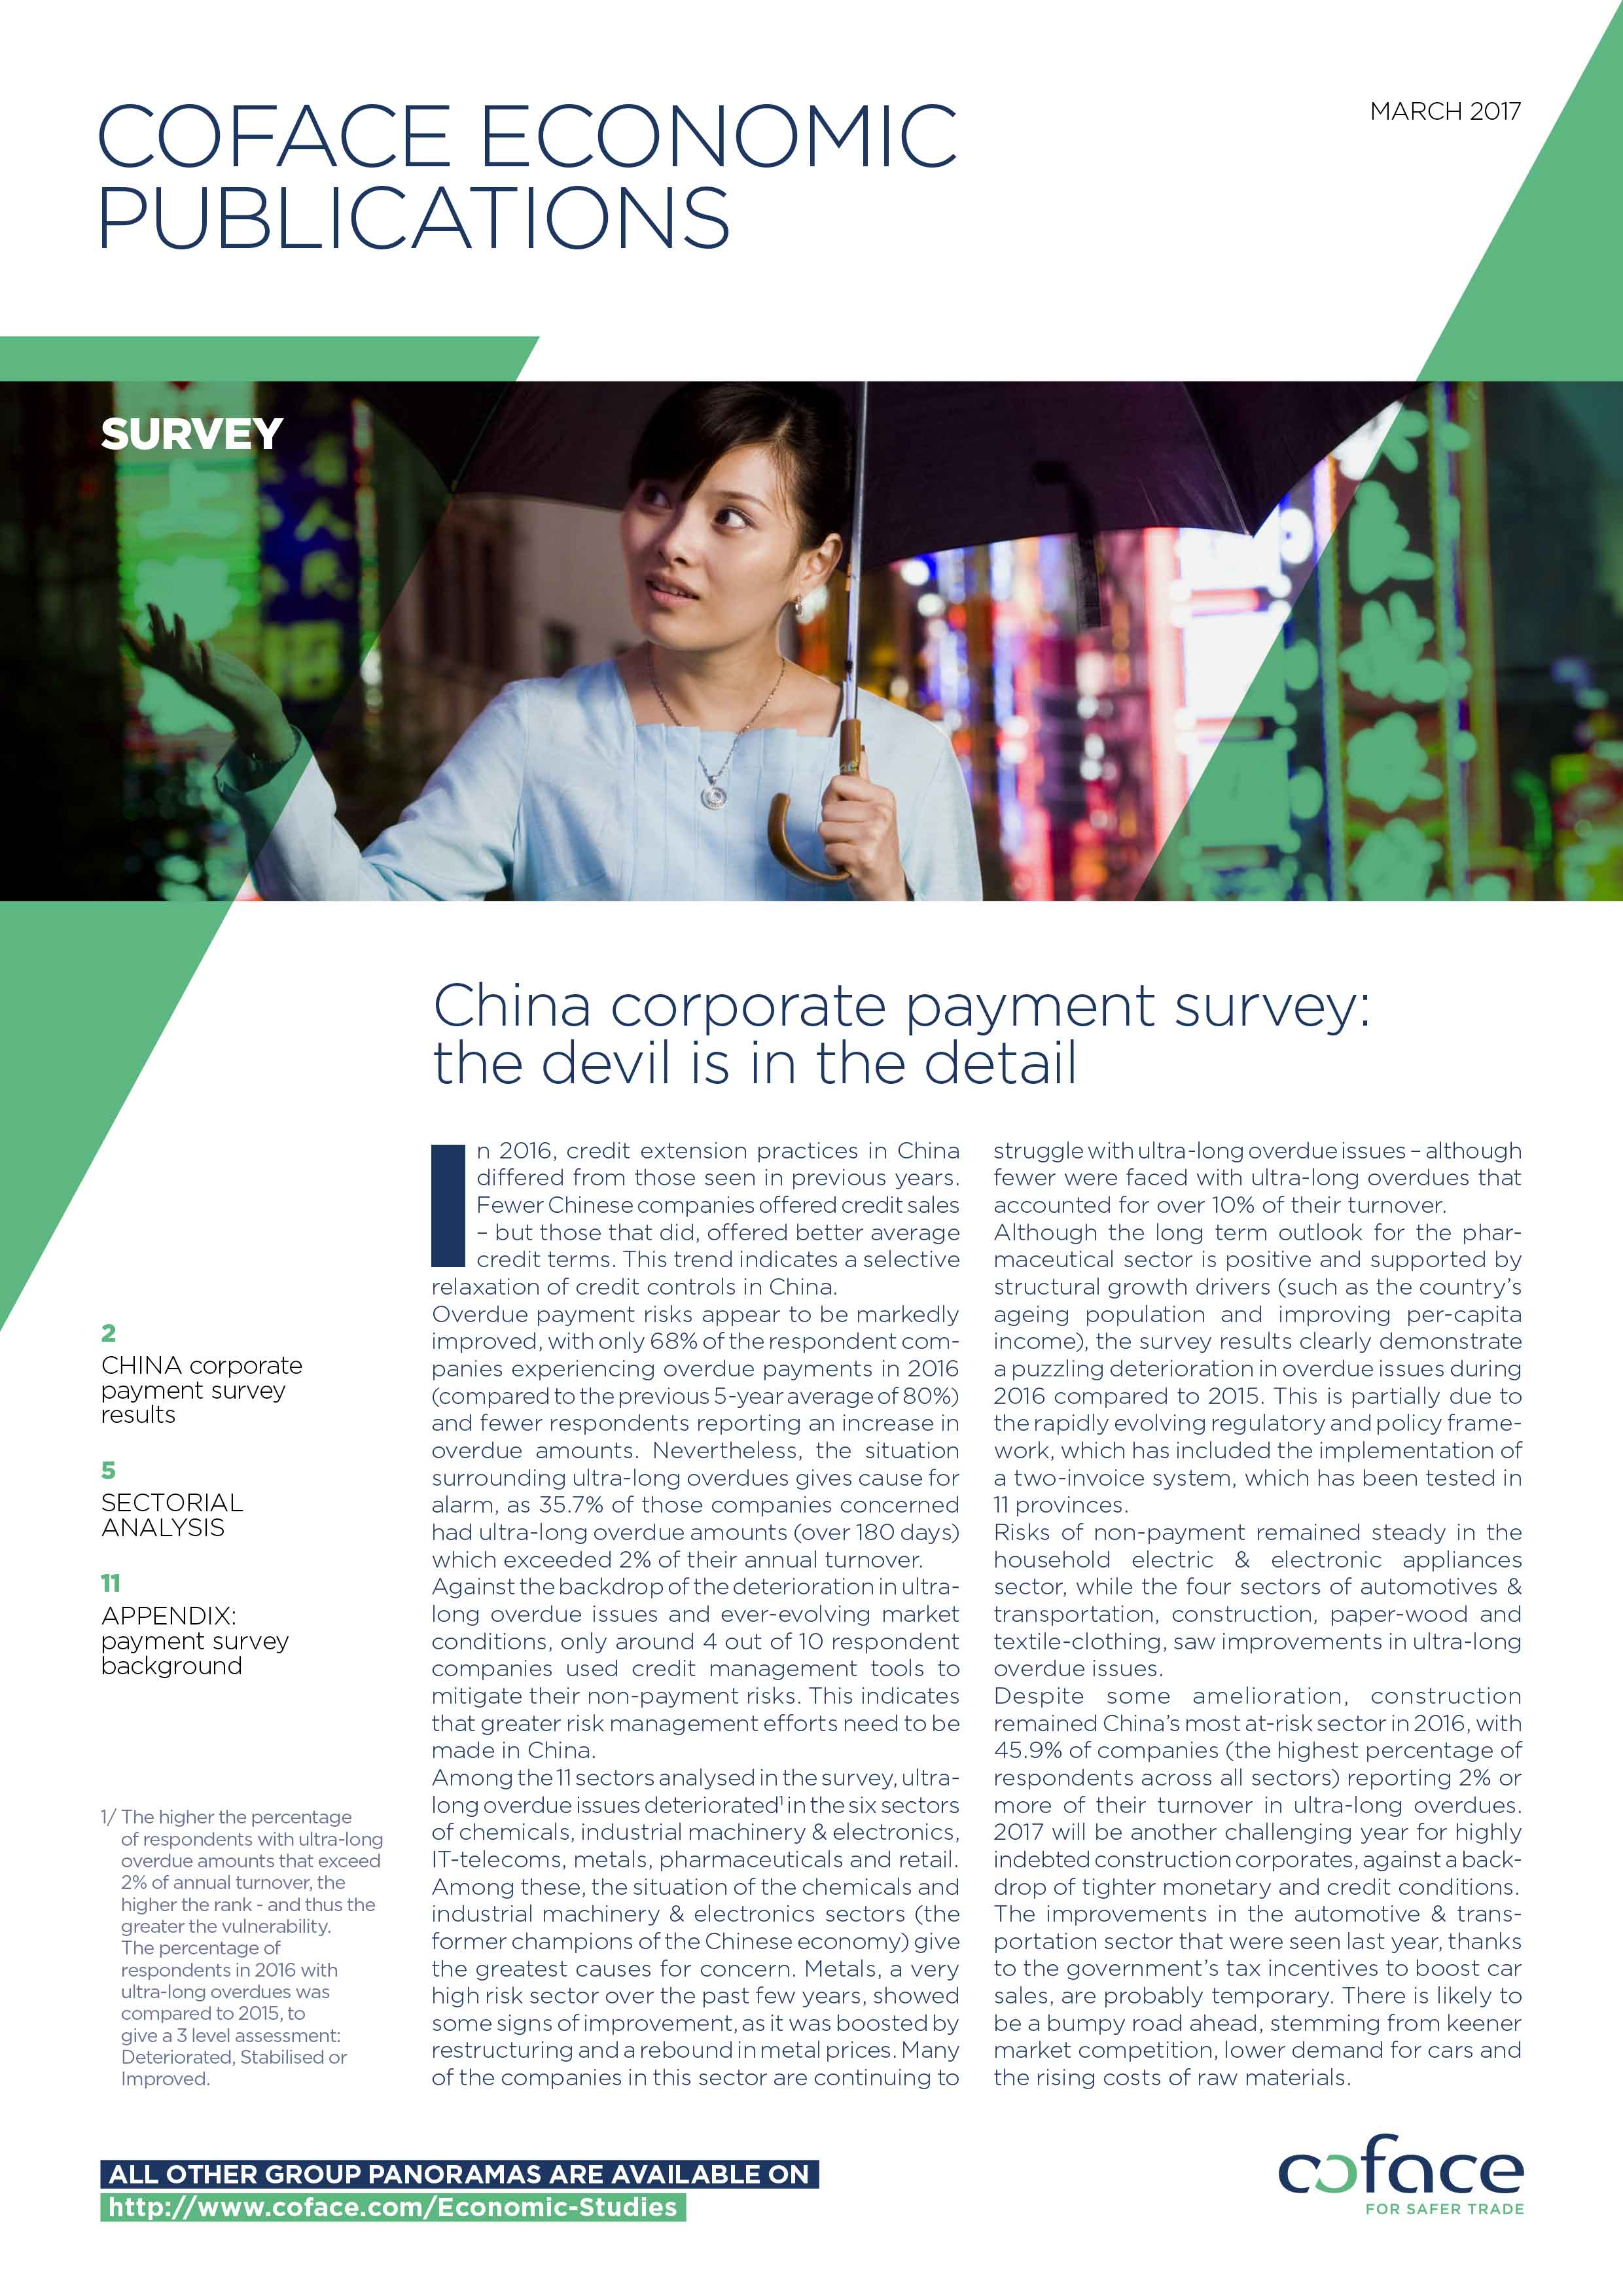 China corporate payment survey: the devil is in the detail